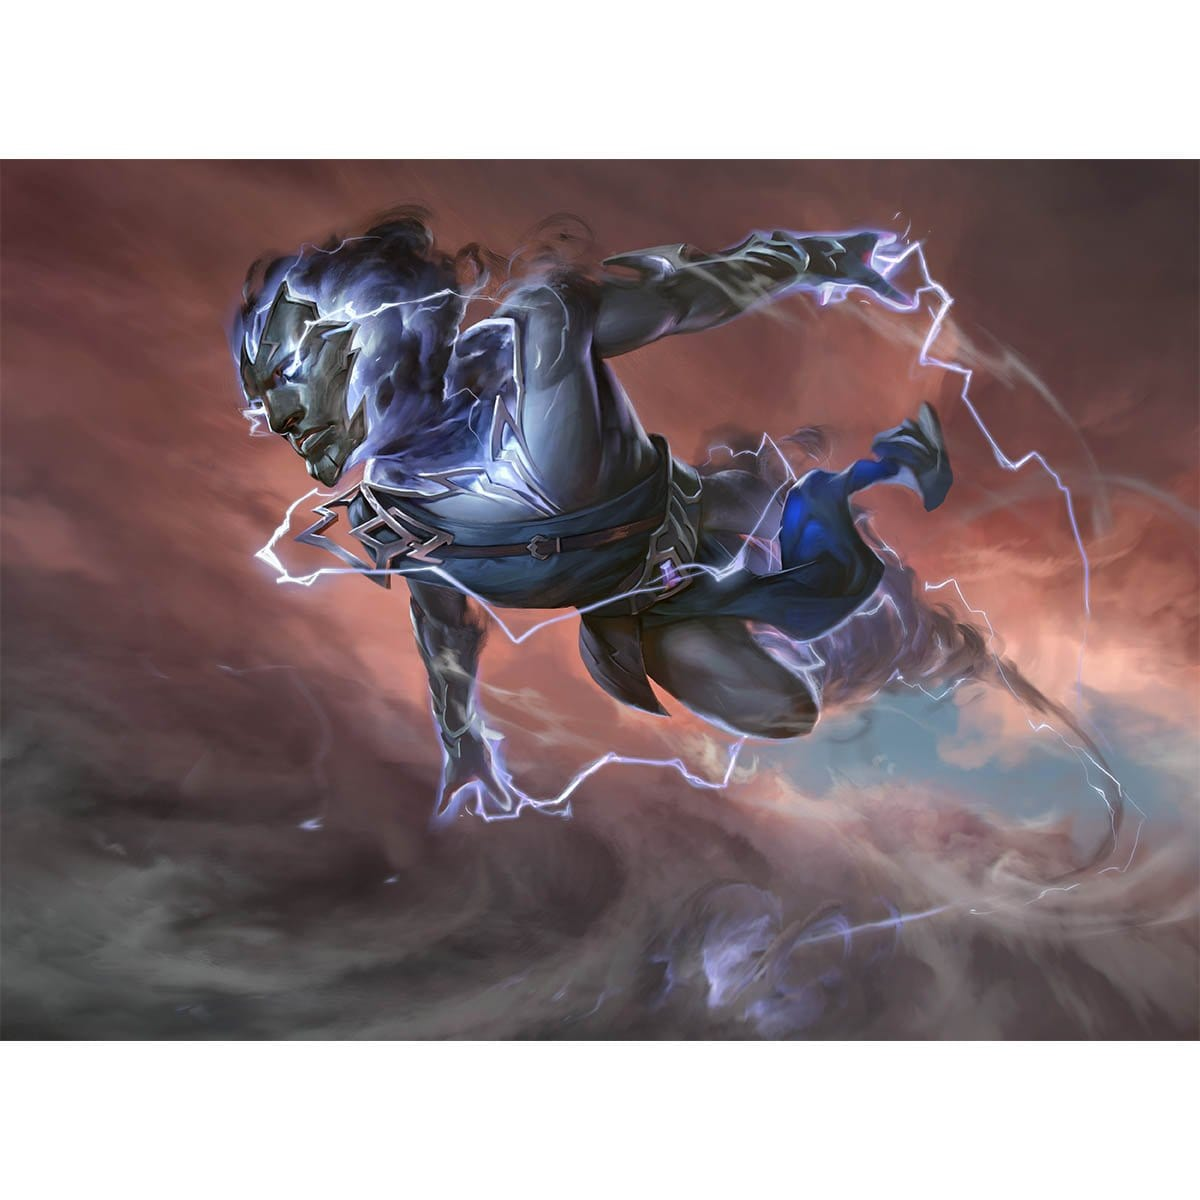 Lightning Stormkin Print - Print - Original Magic Art - Accessories for Magic the Gathering and other card games